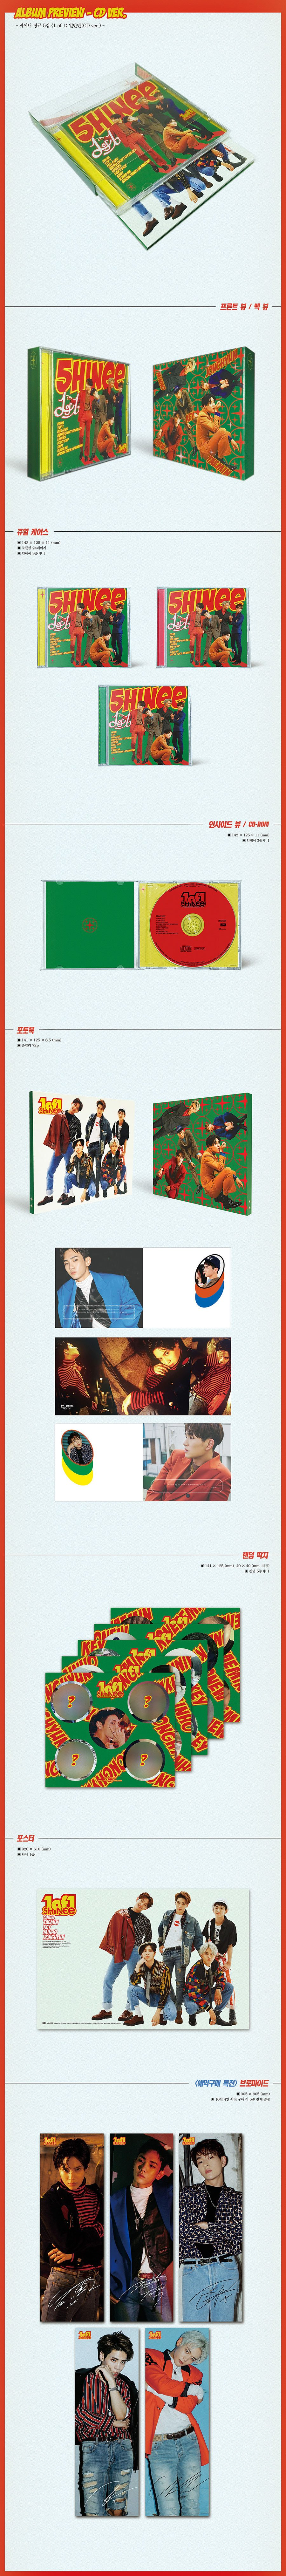 "CD version of SHINee's 5th album ""1 of 1"" / Image Source: SM Entertainment via Instiz"